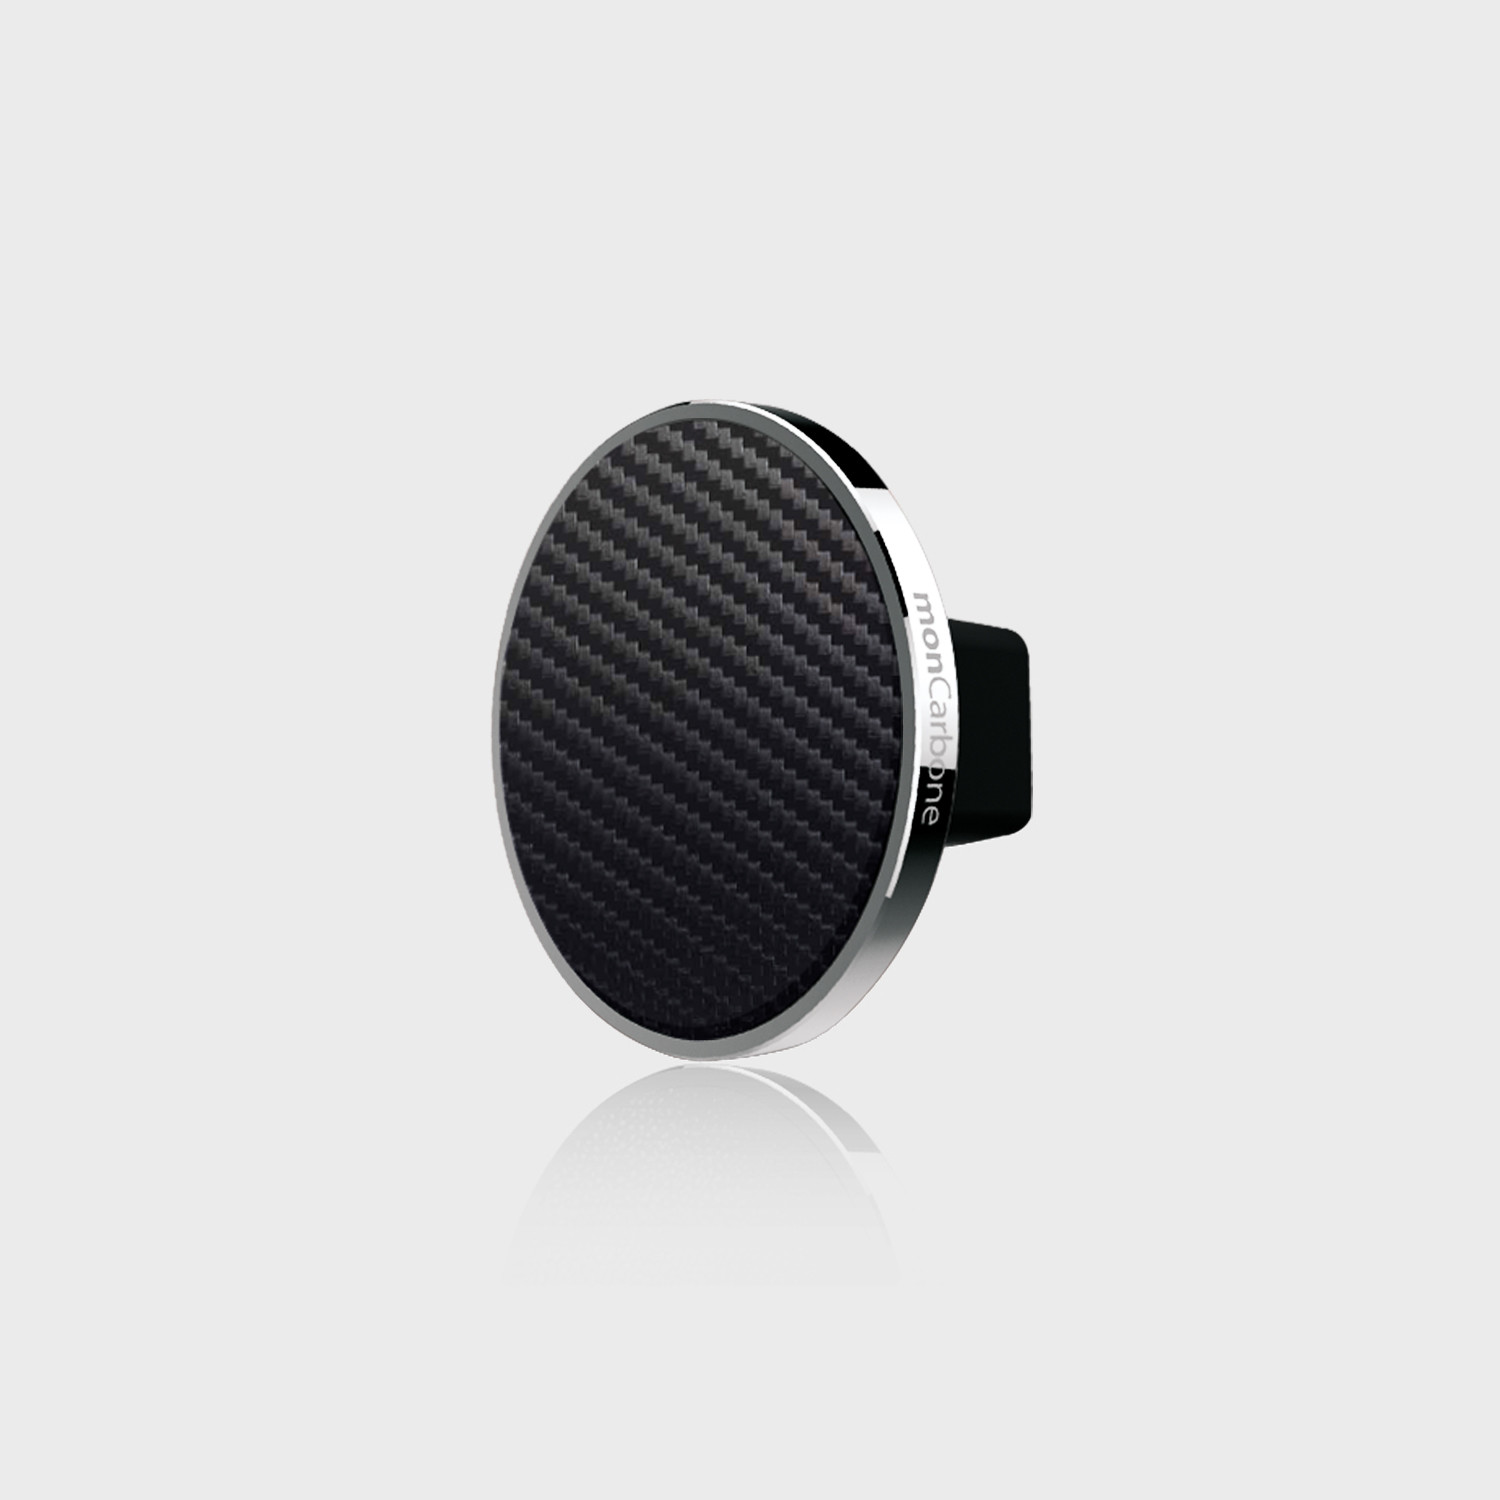 mount carbon gay singles Single mount includes: — 1 justclick carbon fiber magnetic car mount — 2 metal plate adapters double mount includes: — 2 justclick carbon fiber magnetic car mount.